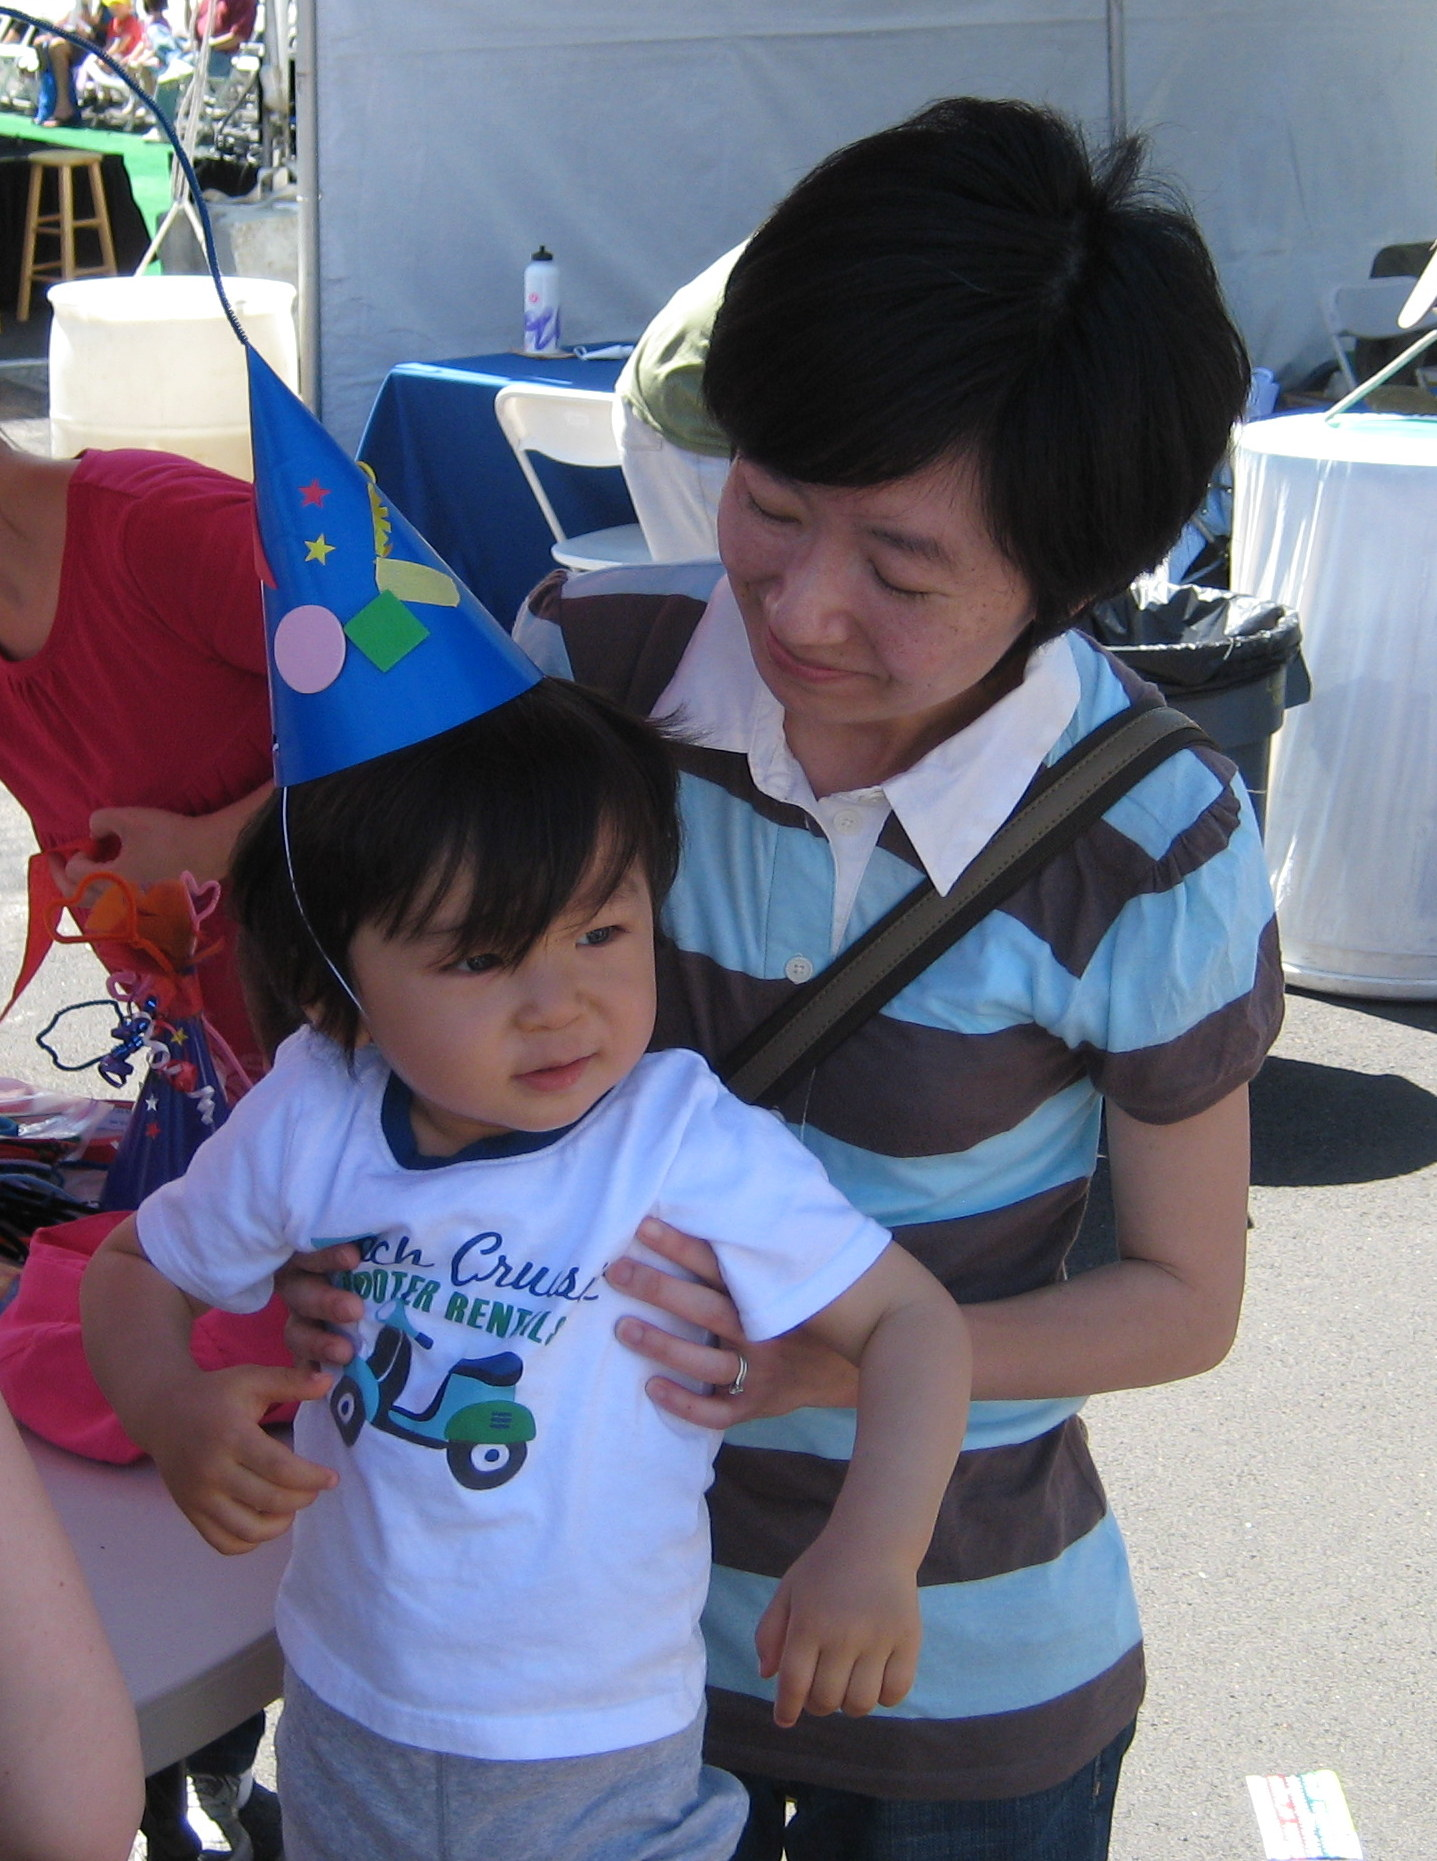 We were at the inaugural Summer Scamper with baby Haruto in 2011, celebrating Harumi and Lucile Packard Children's Hospital's birthdays.